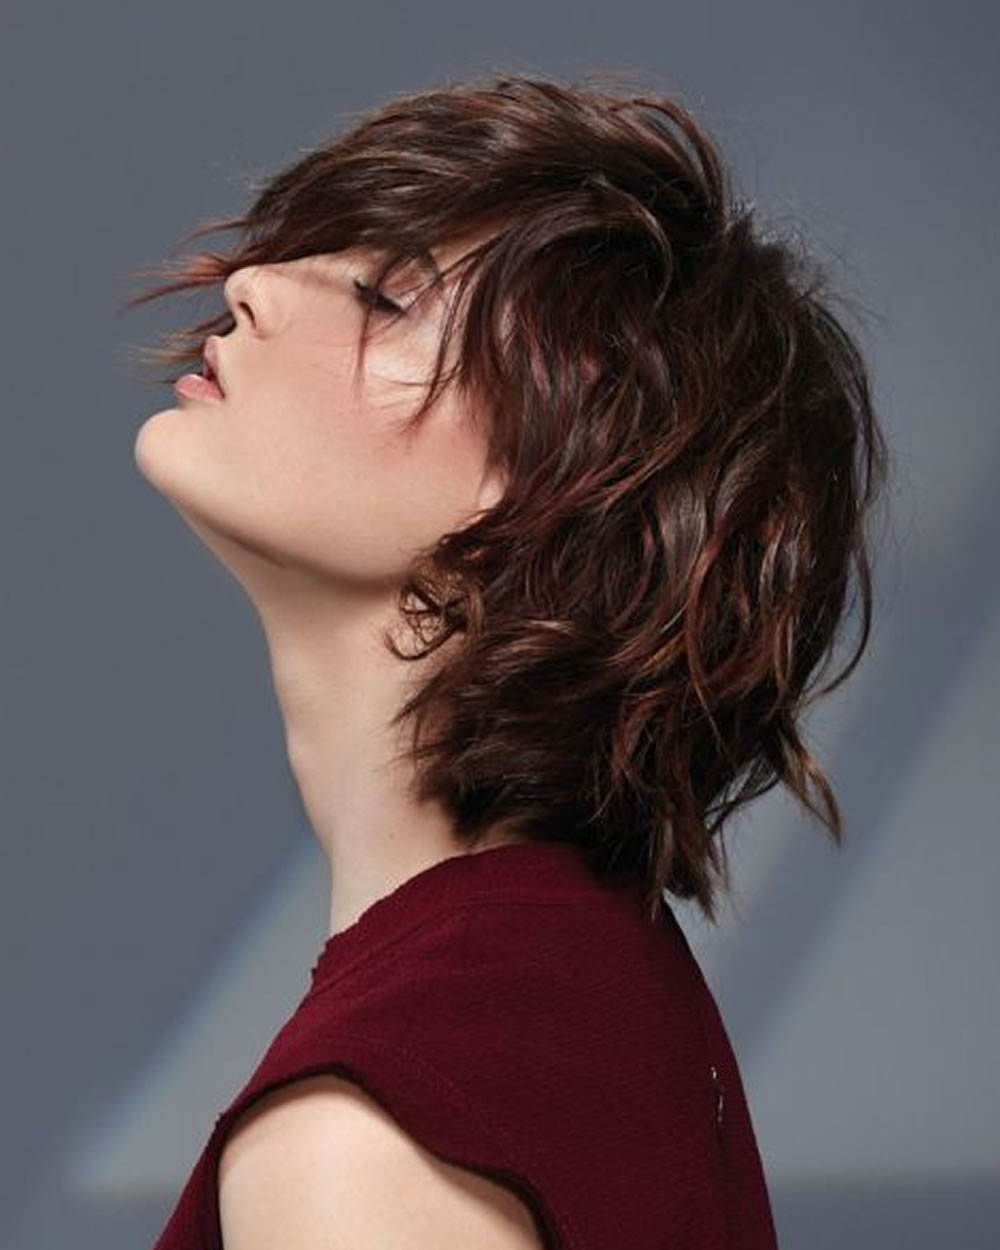 Hair Cuts : Bob Haircuts For Round Faces And Fine Hair Thick Female Regarding Black Short Haircuts For Round Faces (View 13 of 25)